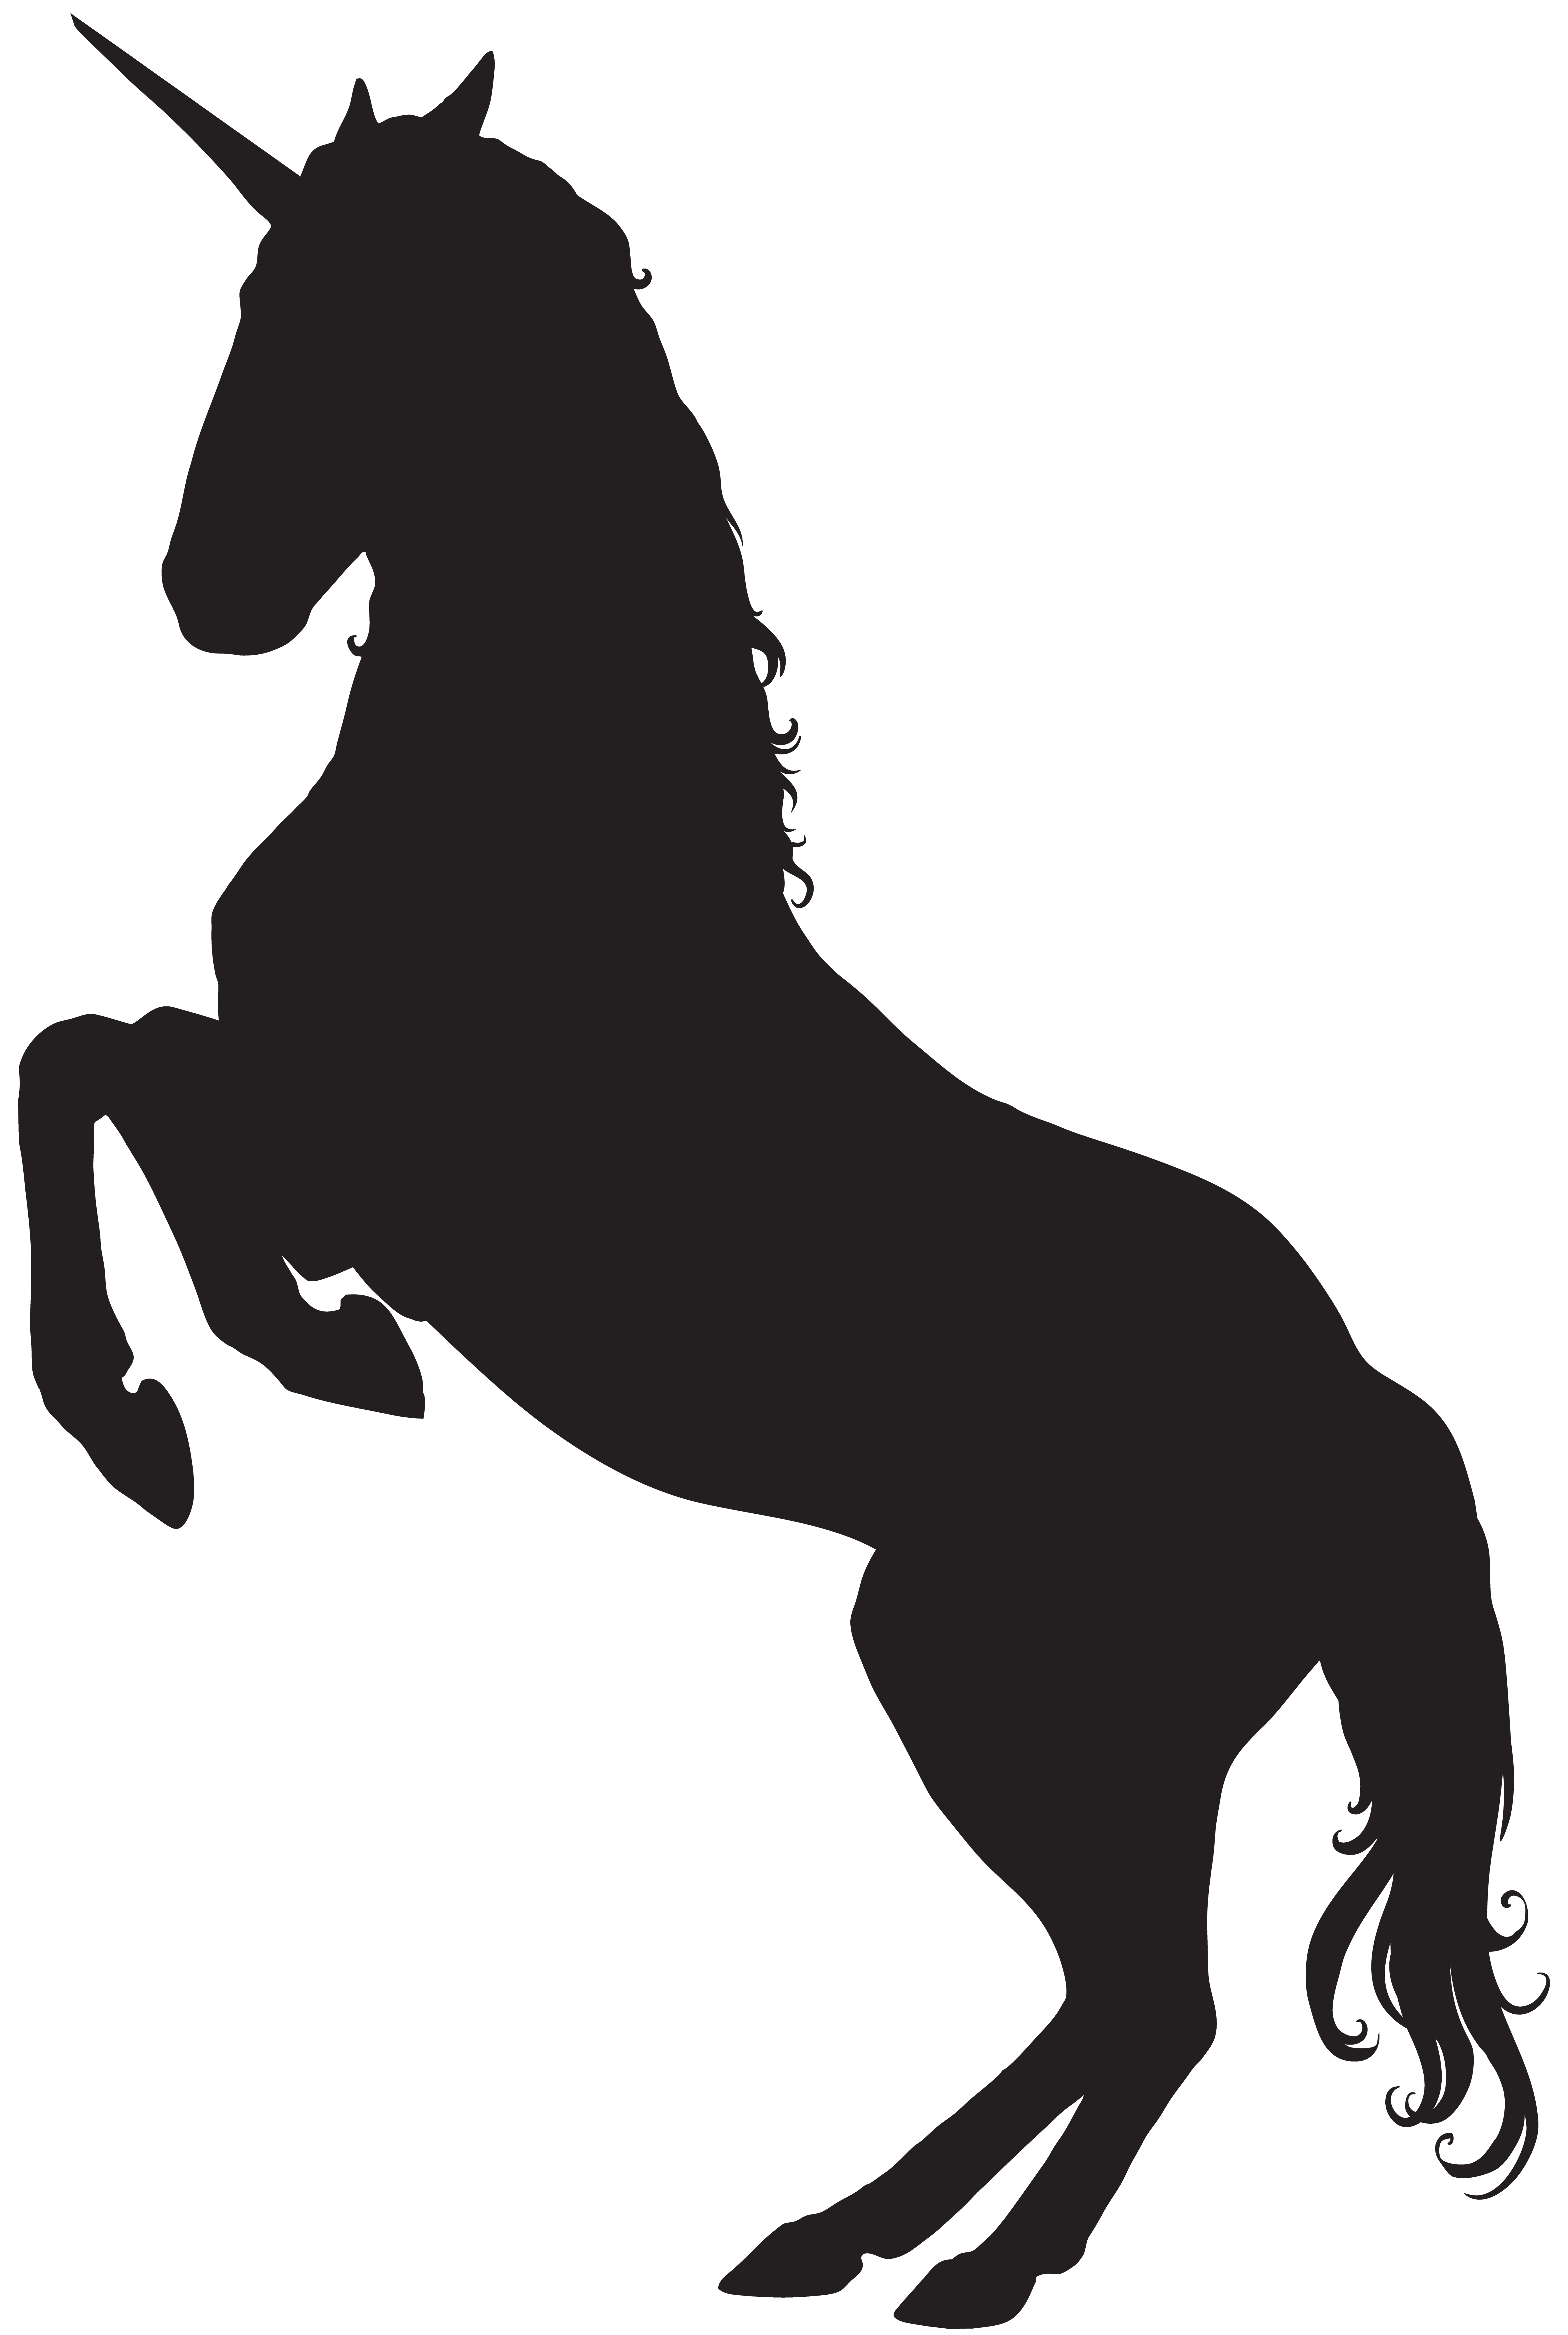 Silhouette png clip art. Clipart unicorn high resolution